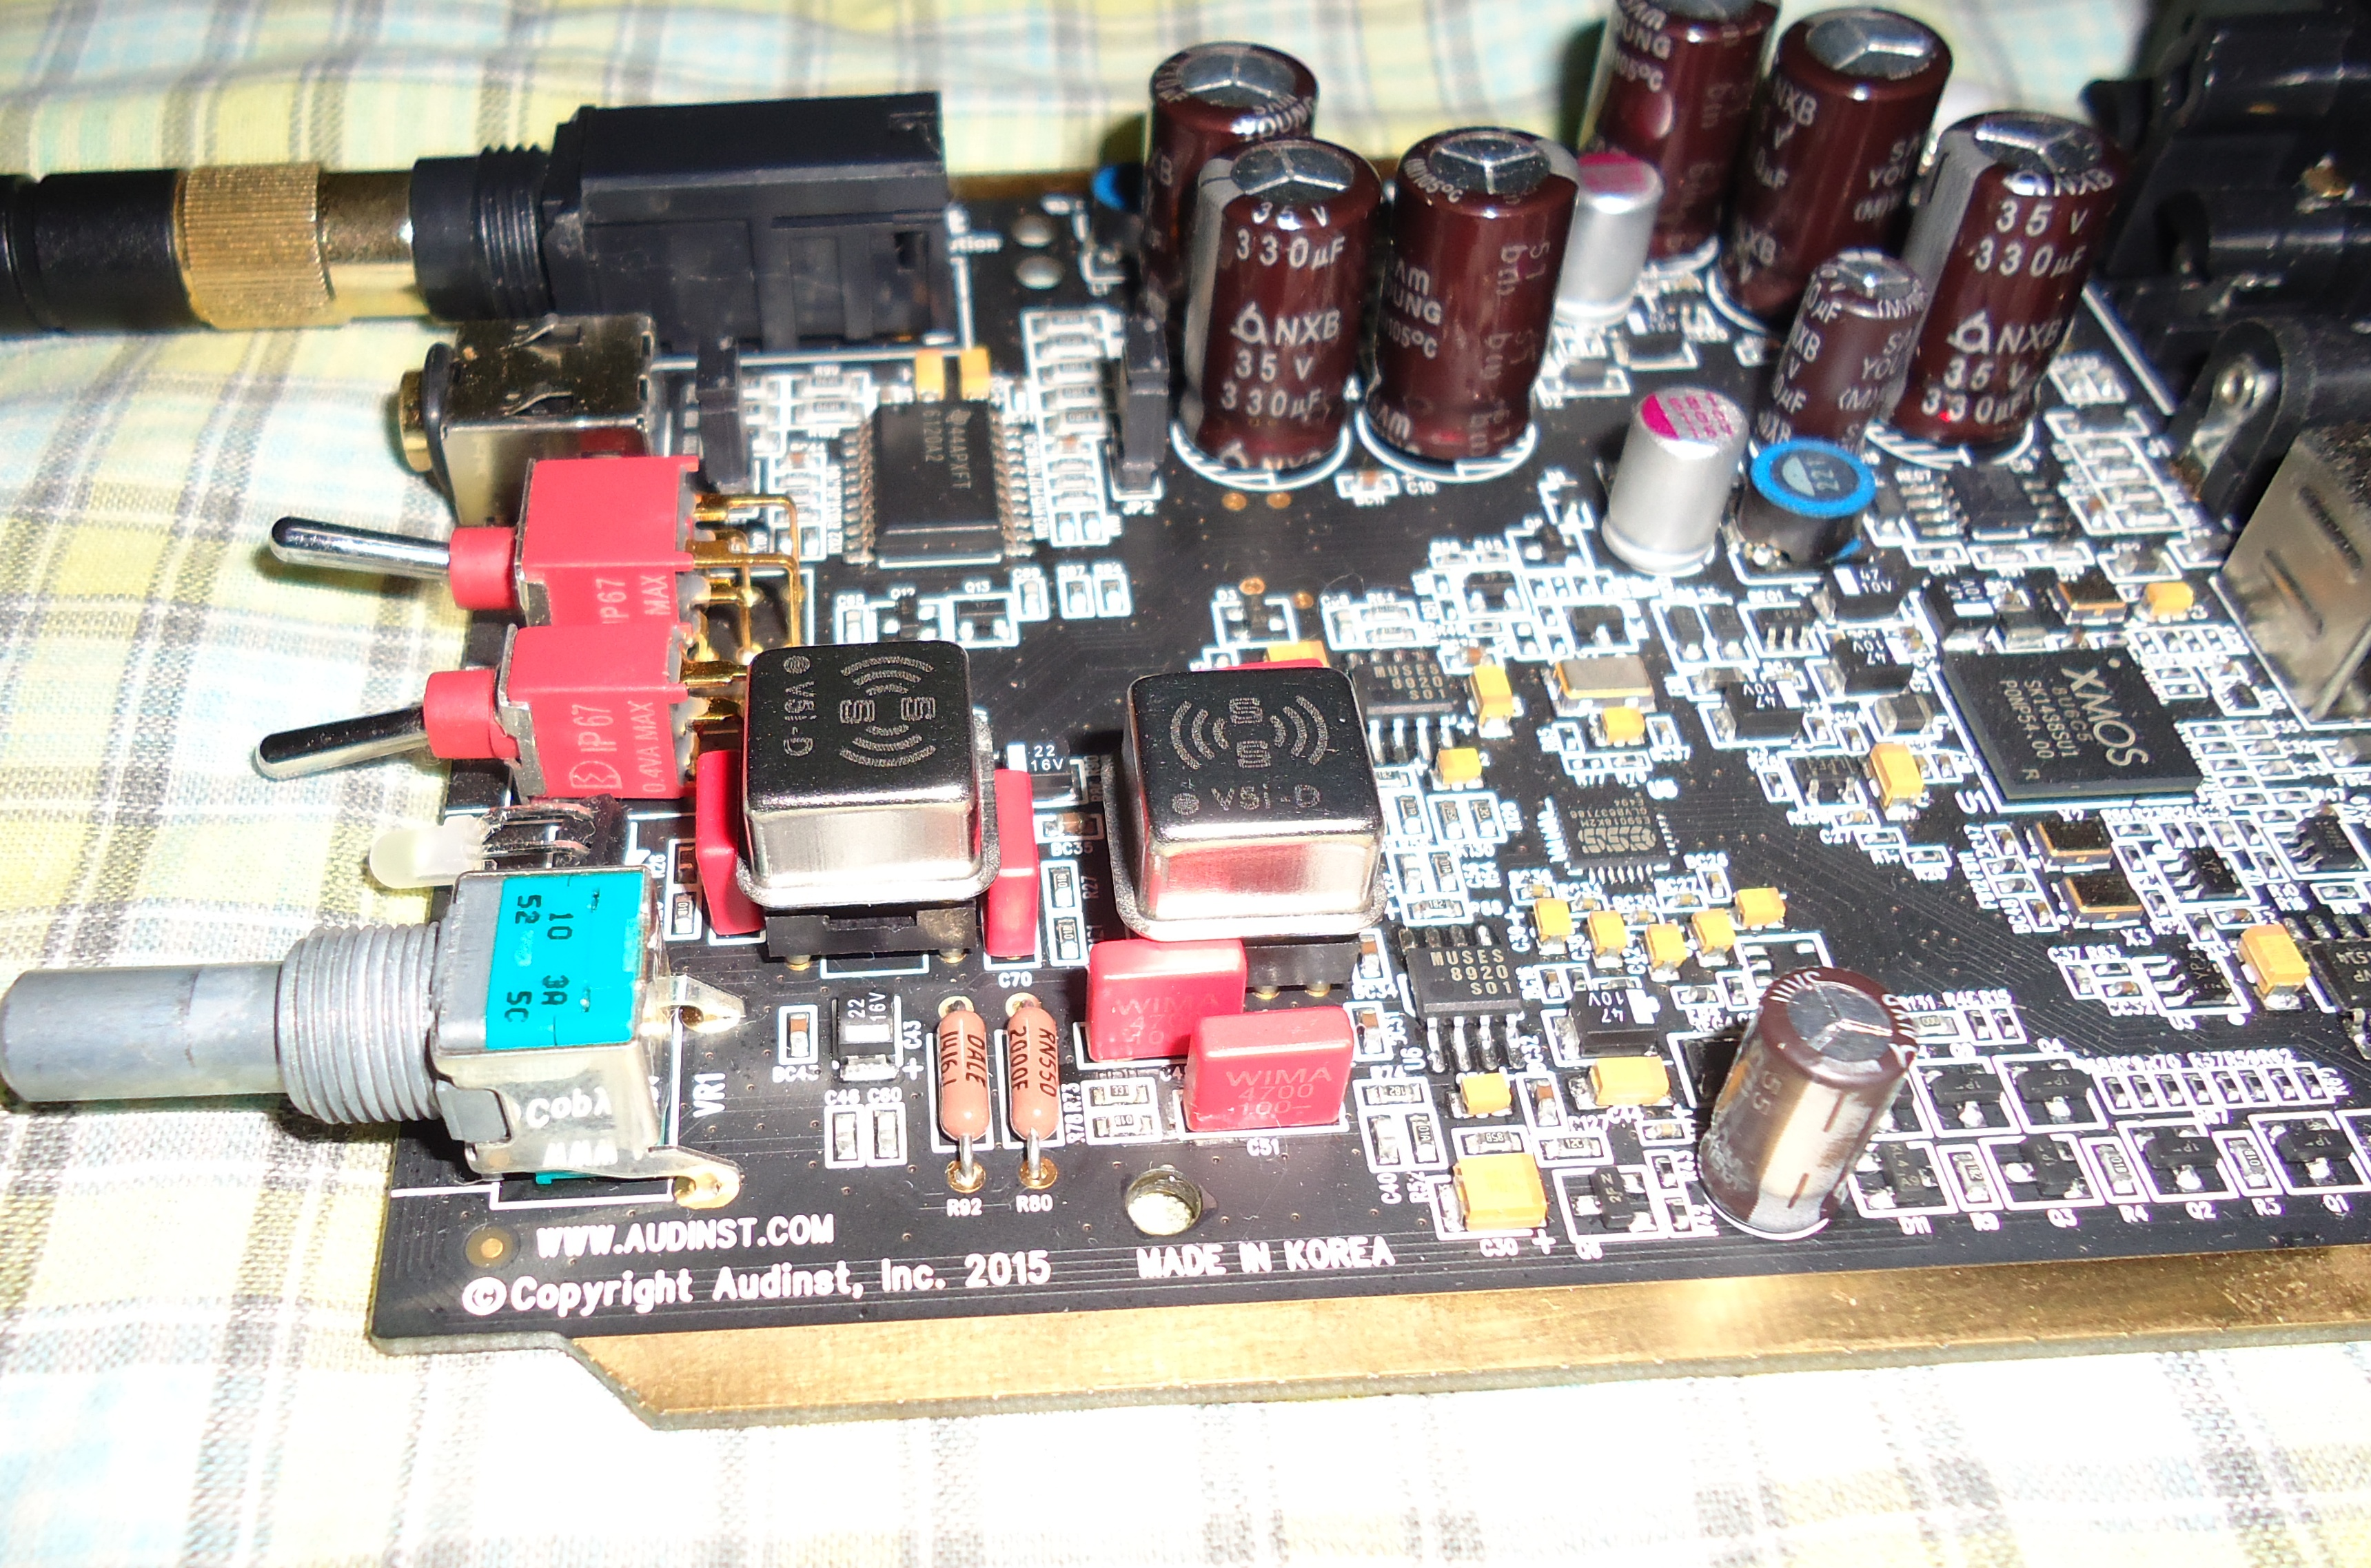 Burson Audio Supreme Sound Opamp V5i Reviews Page 2 Headphone Powerful Amplifier Using Opa134 Conclusion The Approach Is What Impresses Me Very Much One Of Handful Manufacturers In World Who Focus Bringing